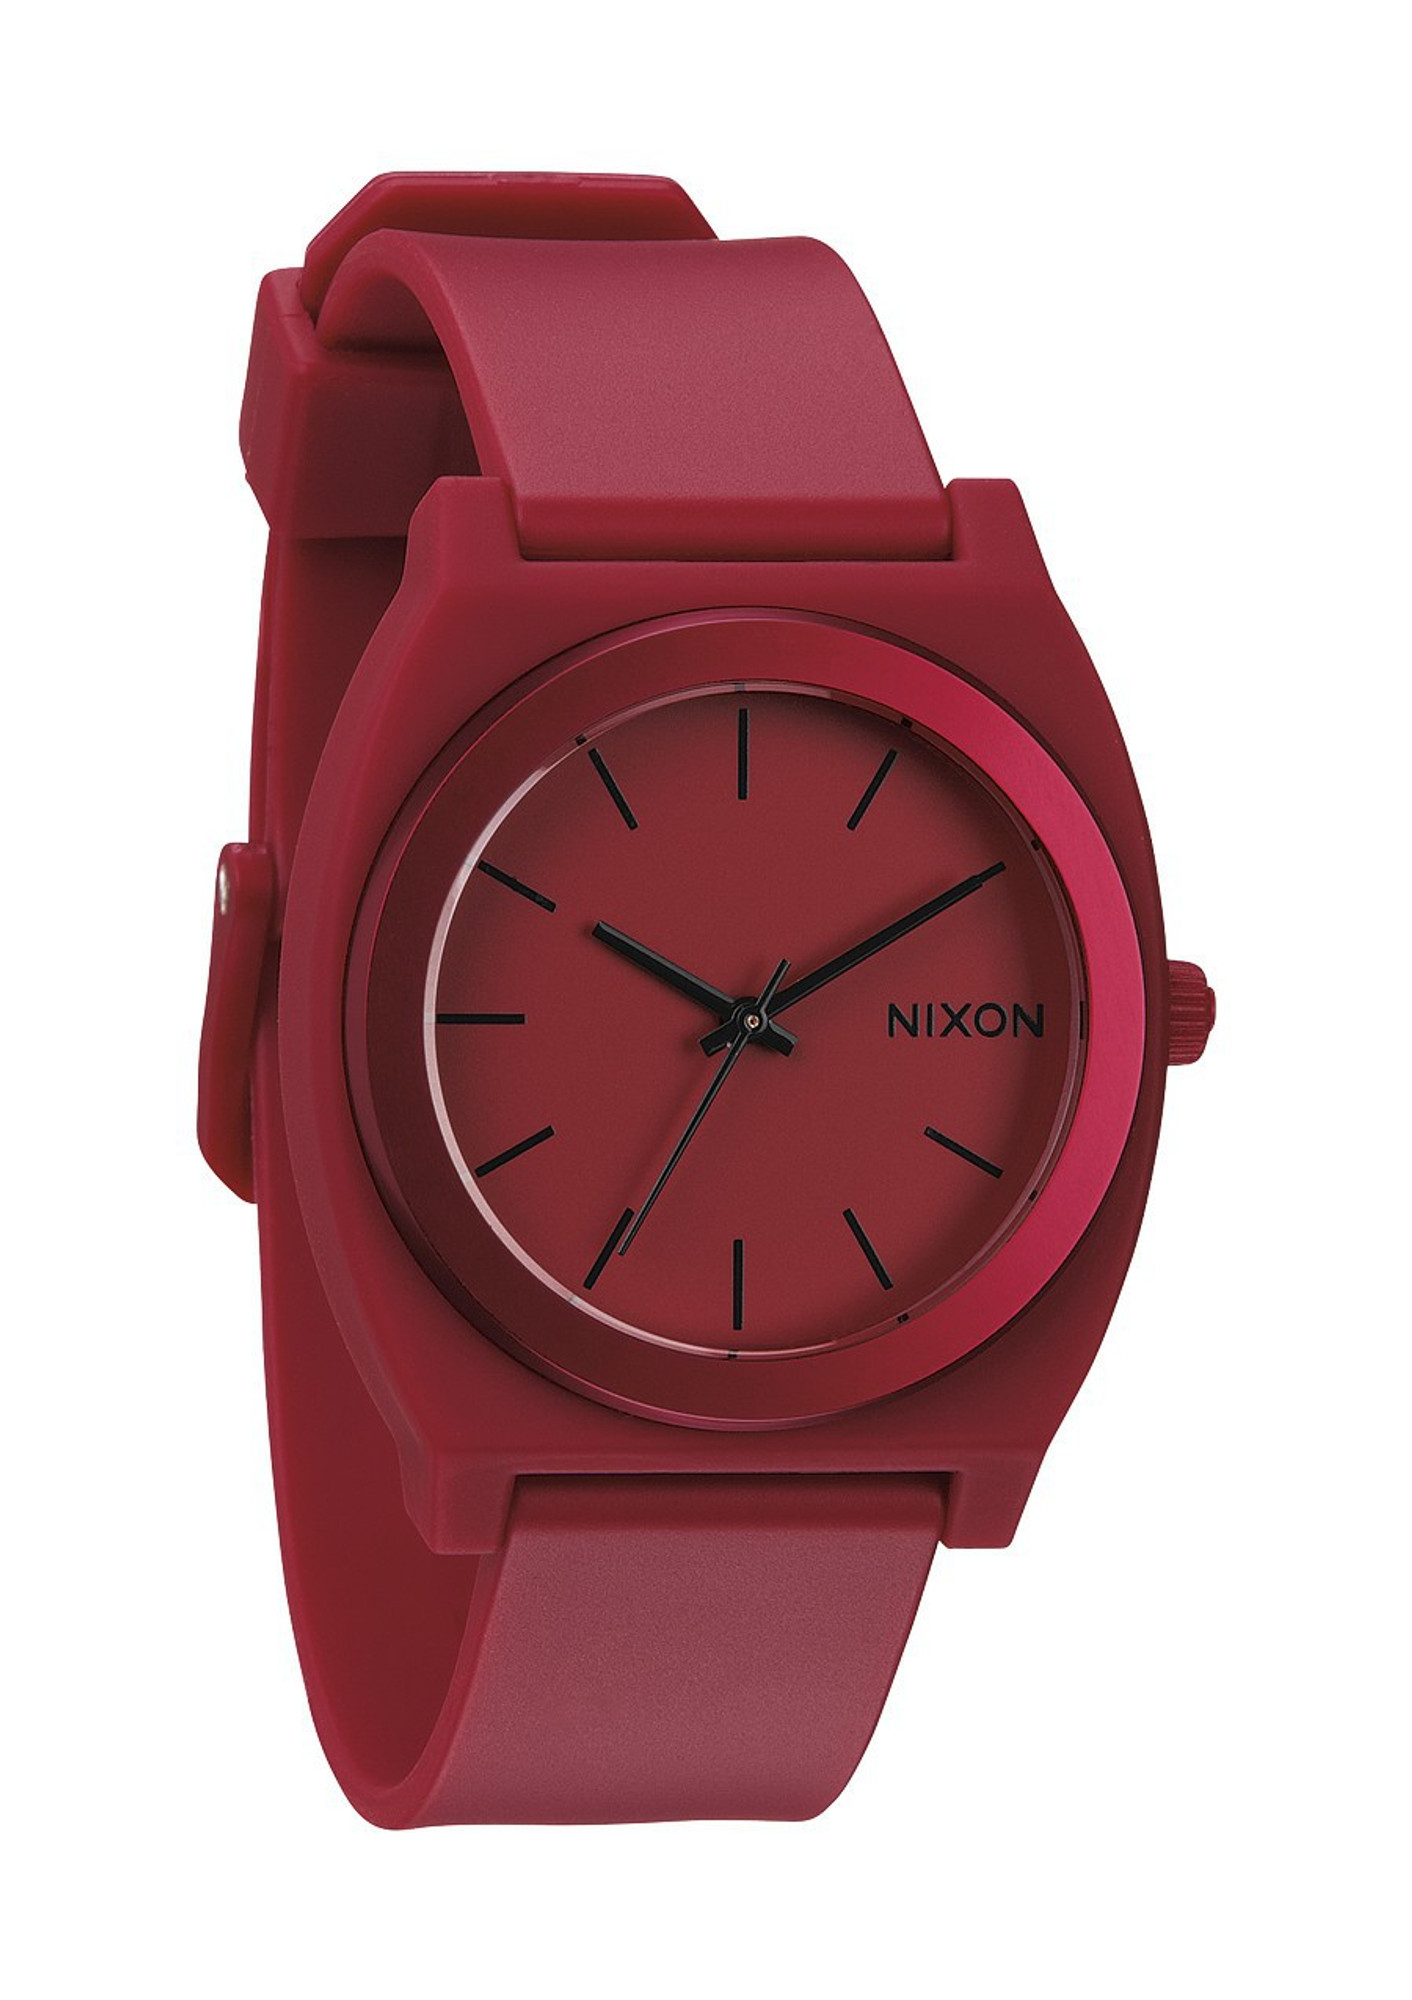 NIXON The Time Teller P Uhr Rot Ano A119 1298